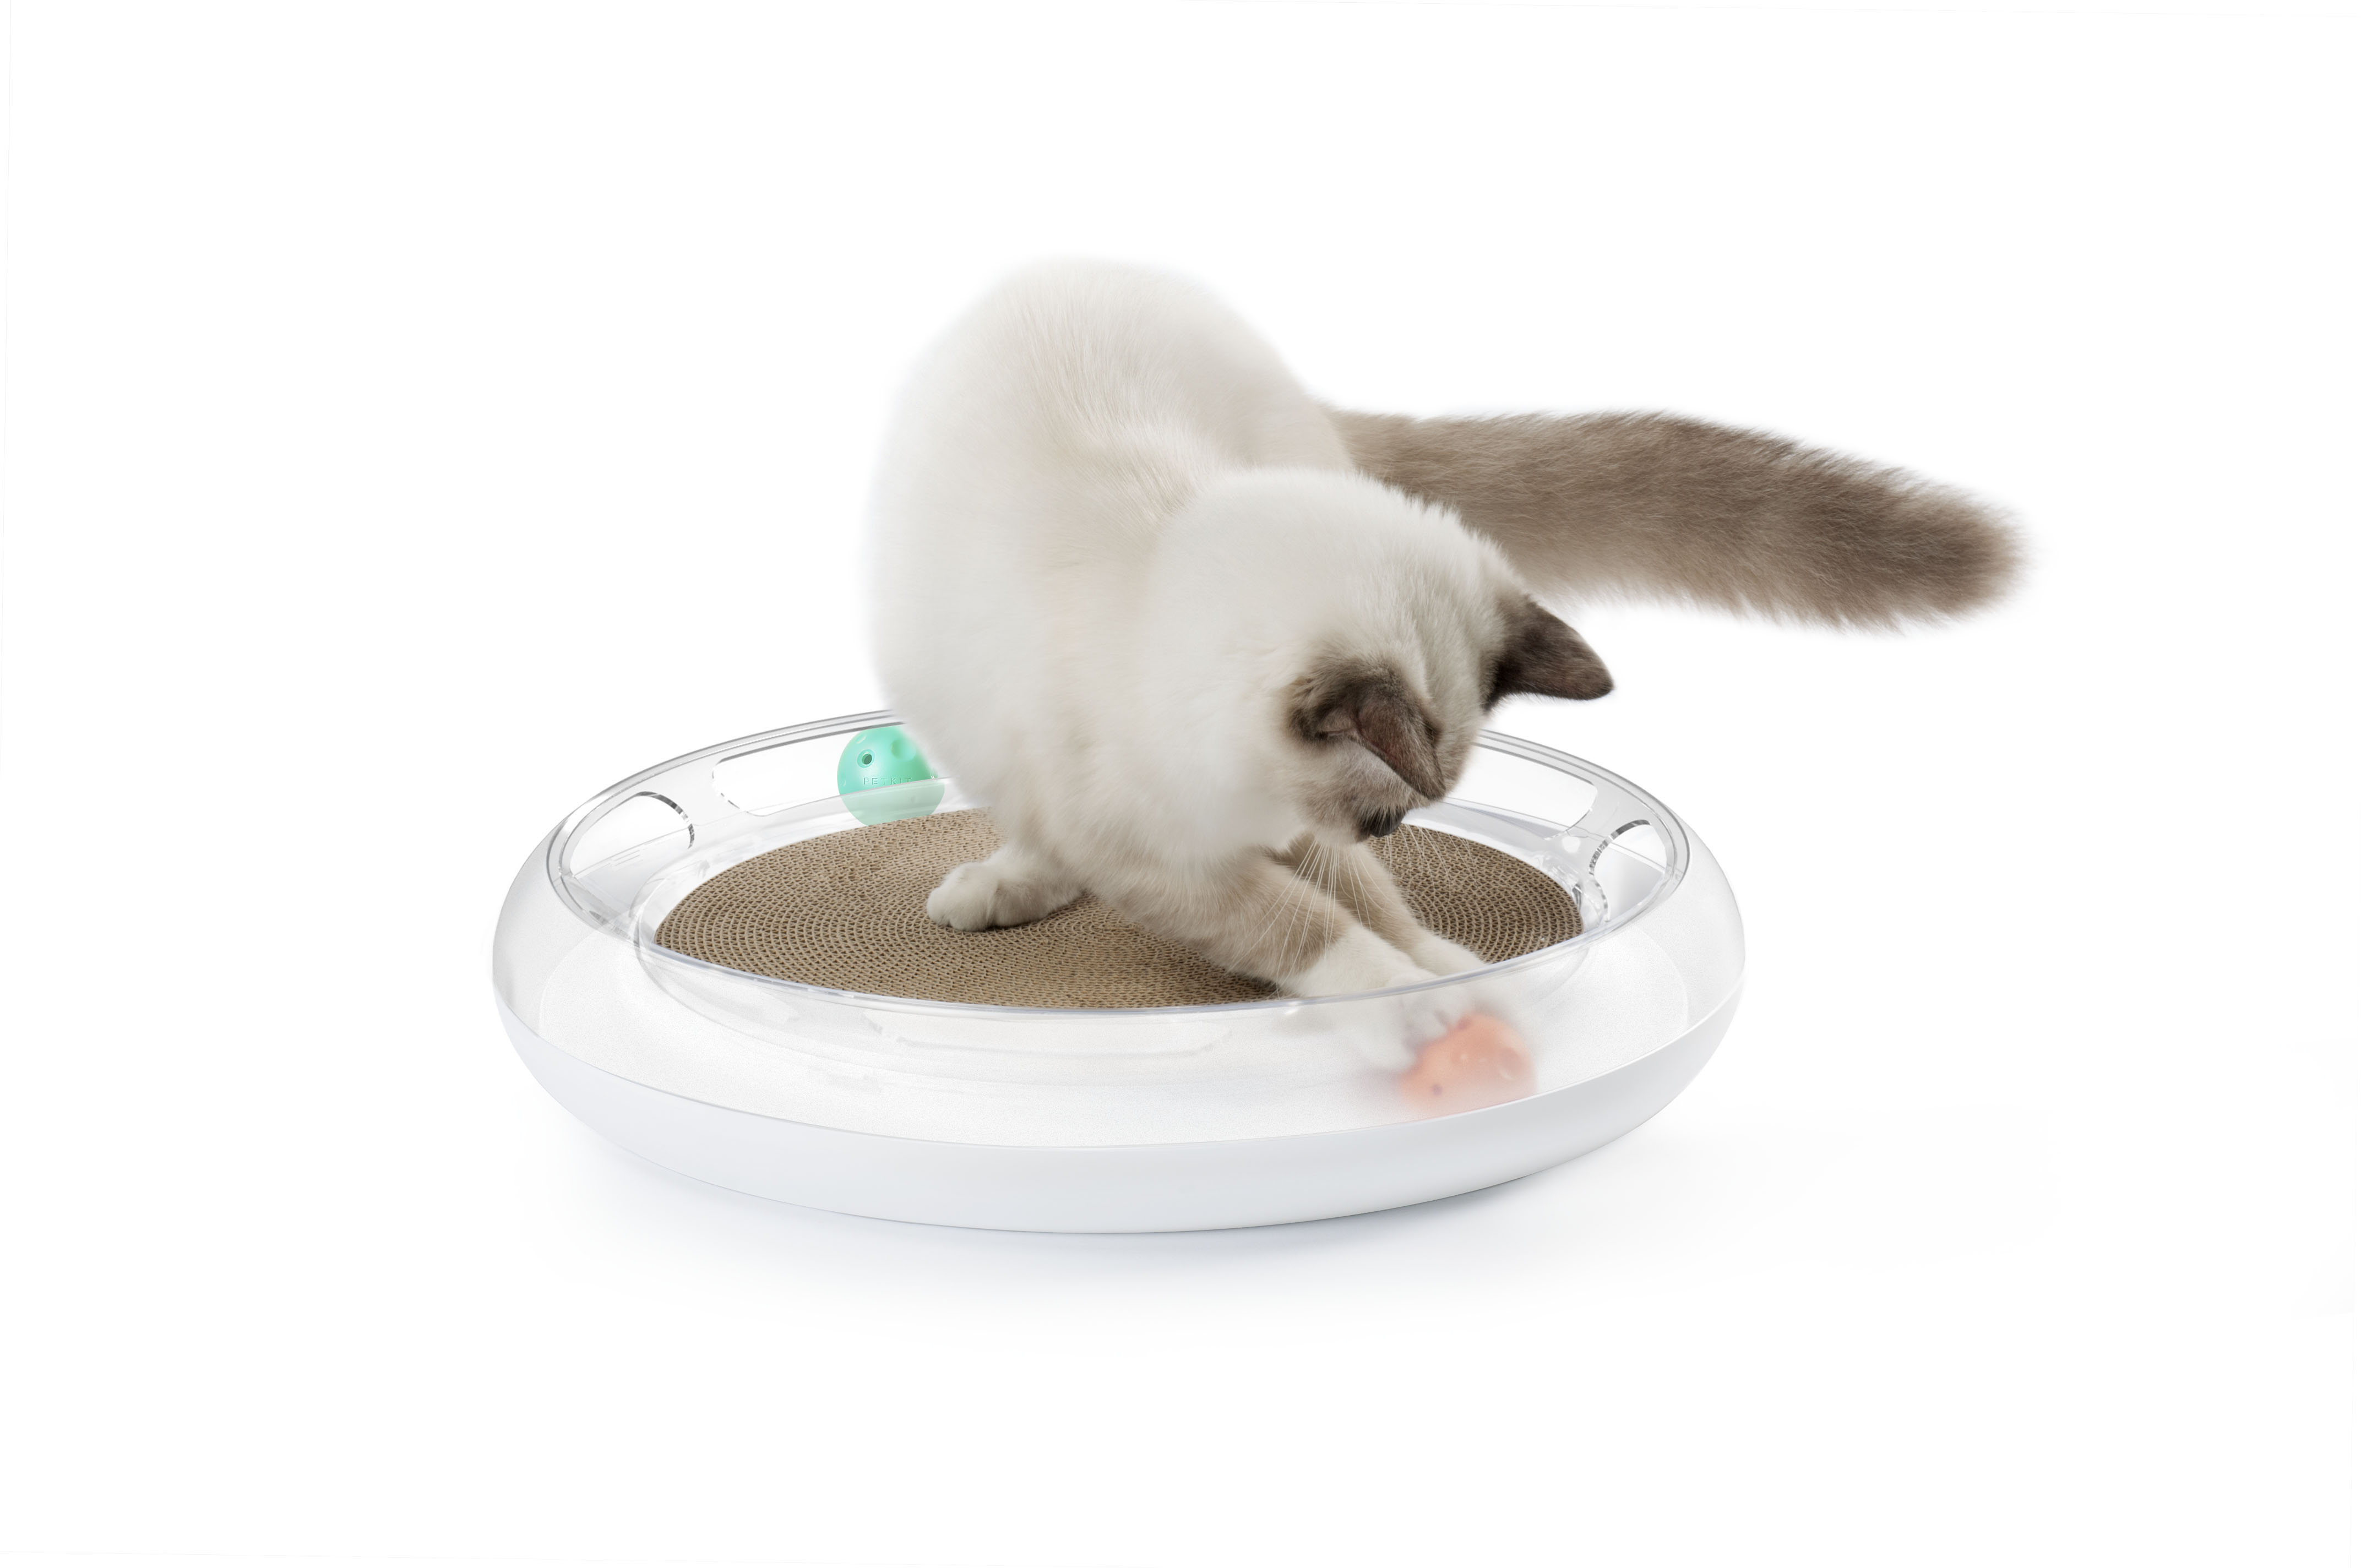 4in1 Cat Scratcher Image